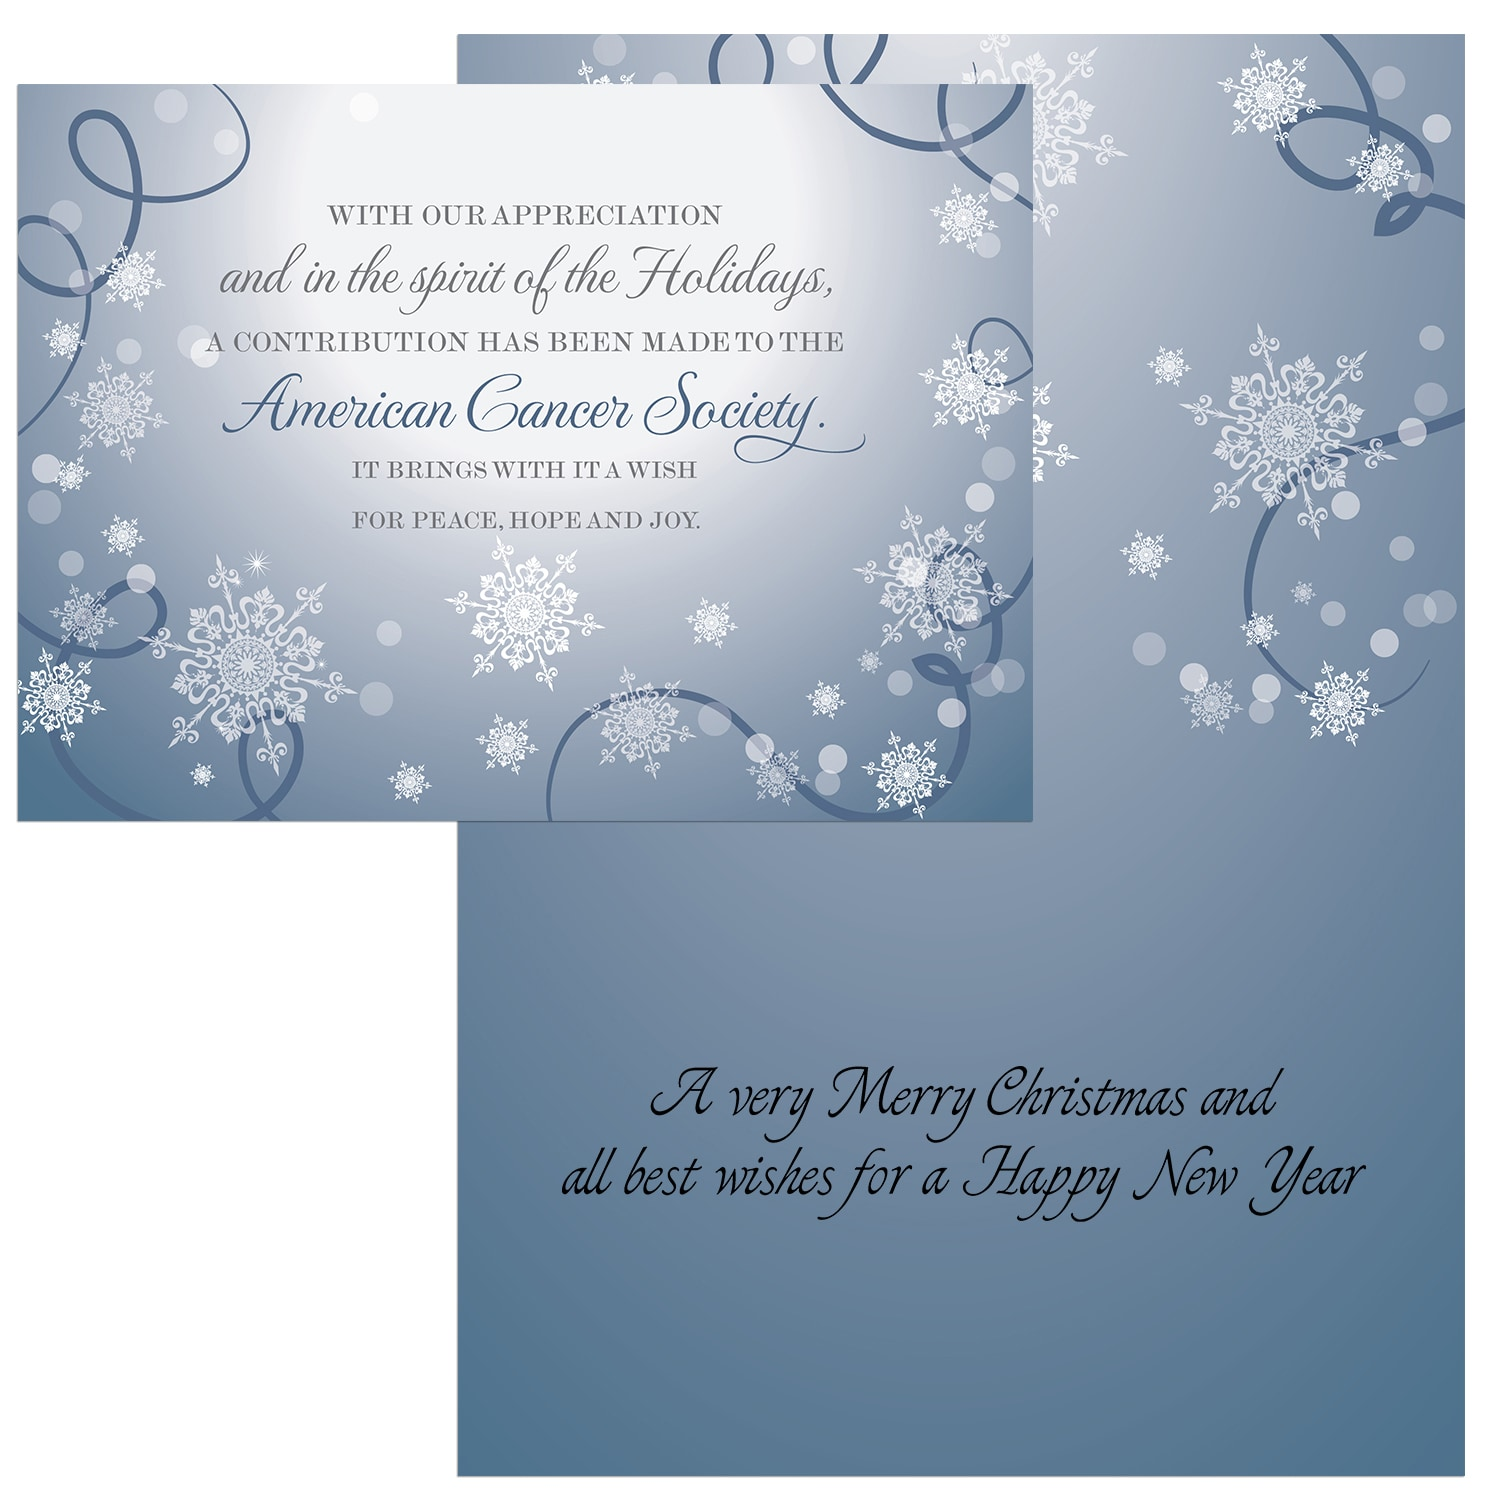 Sincere Hope | acsgreetings.org